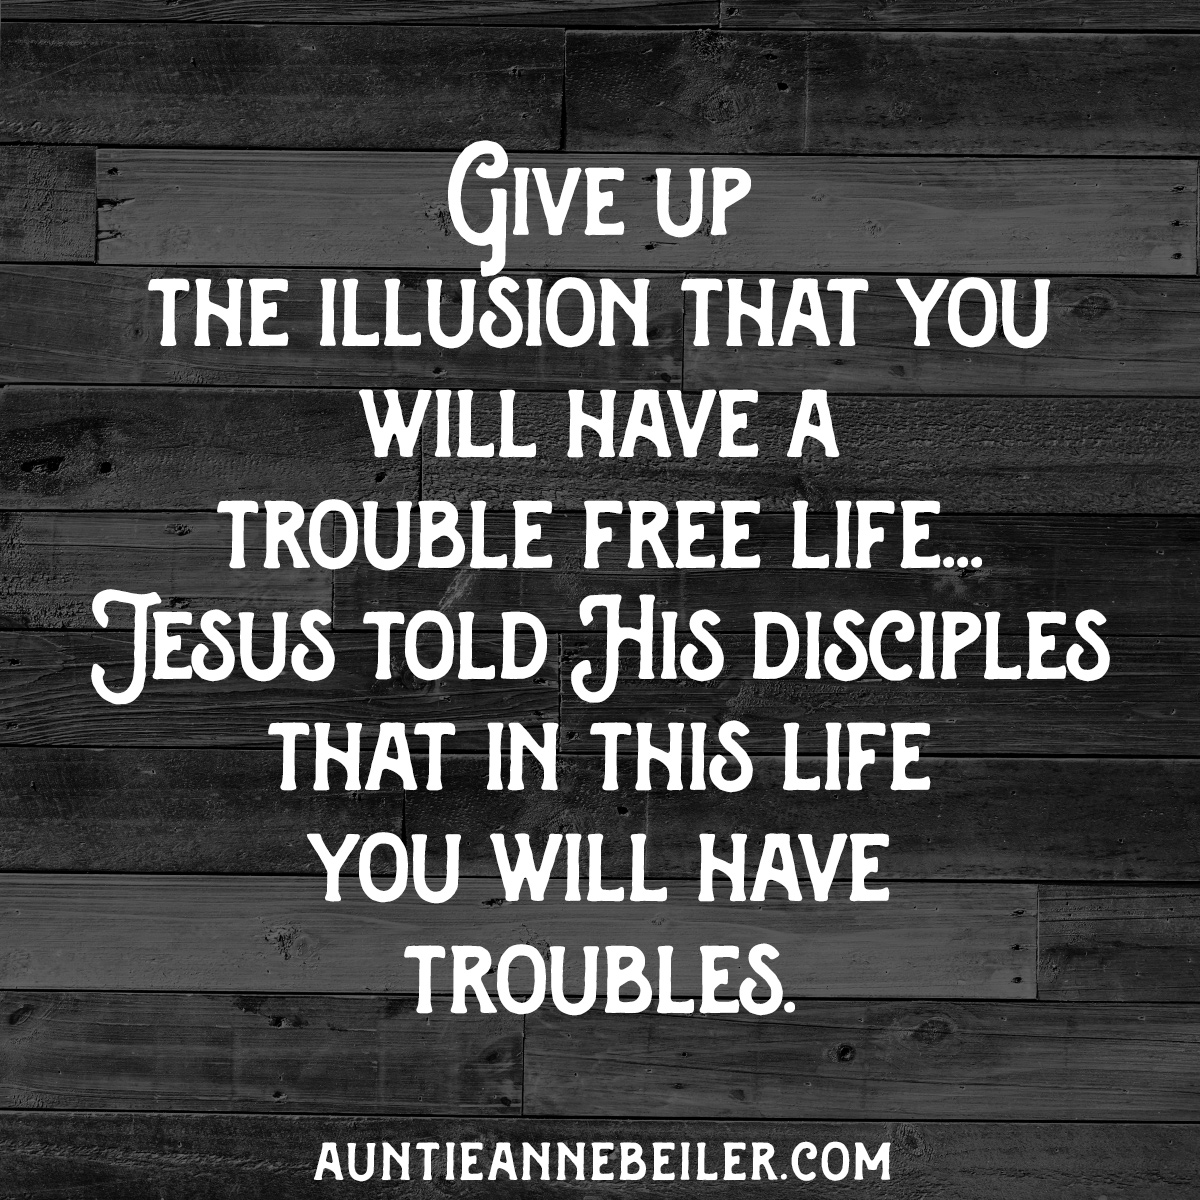 In This Life, You Will Have Troubles